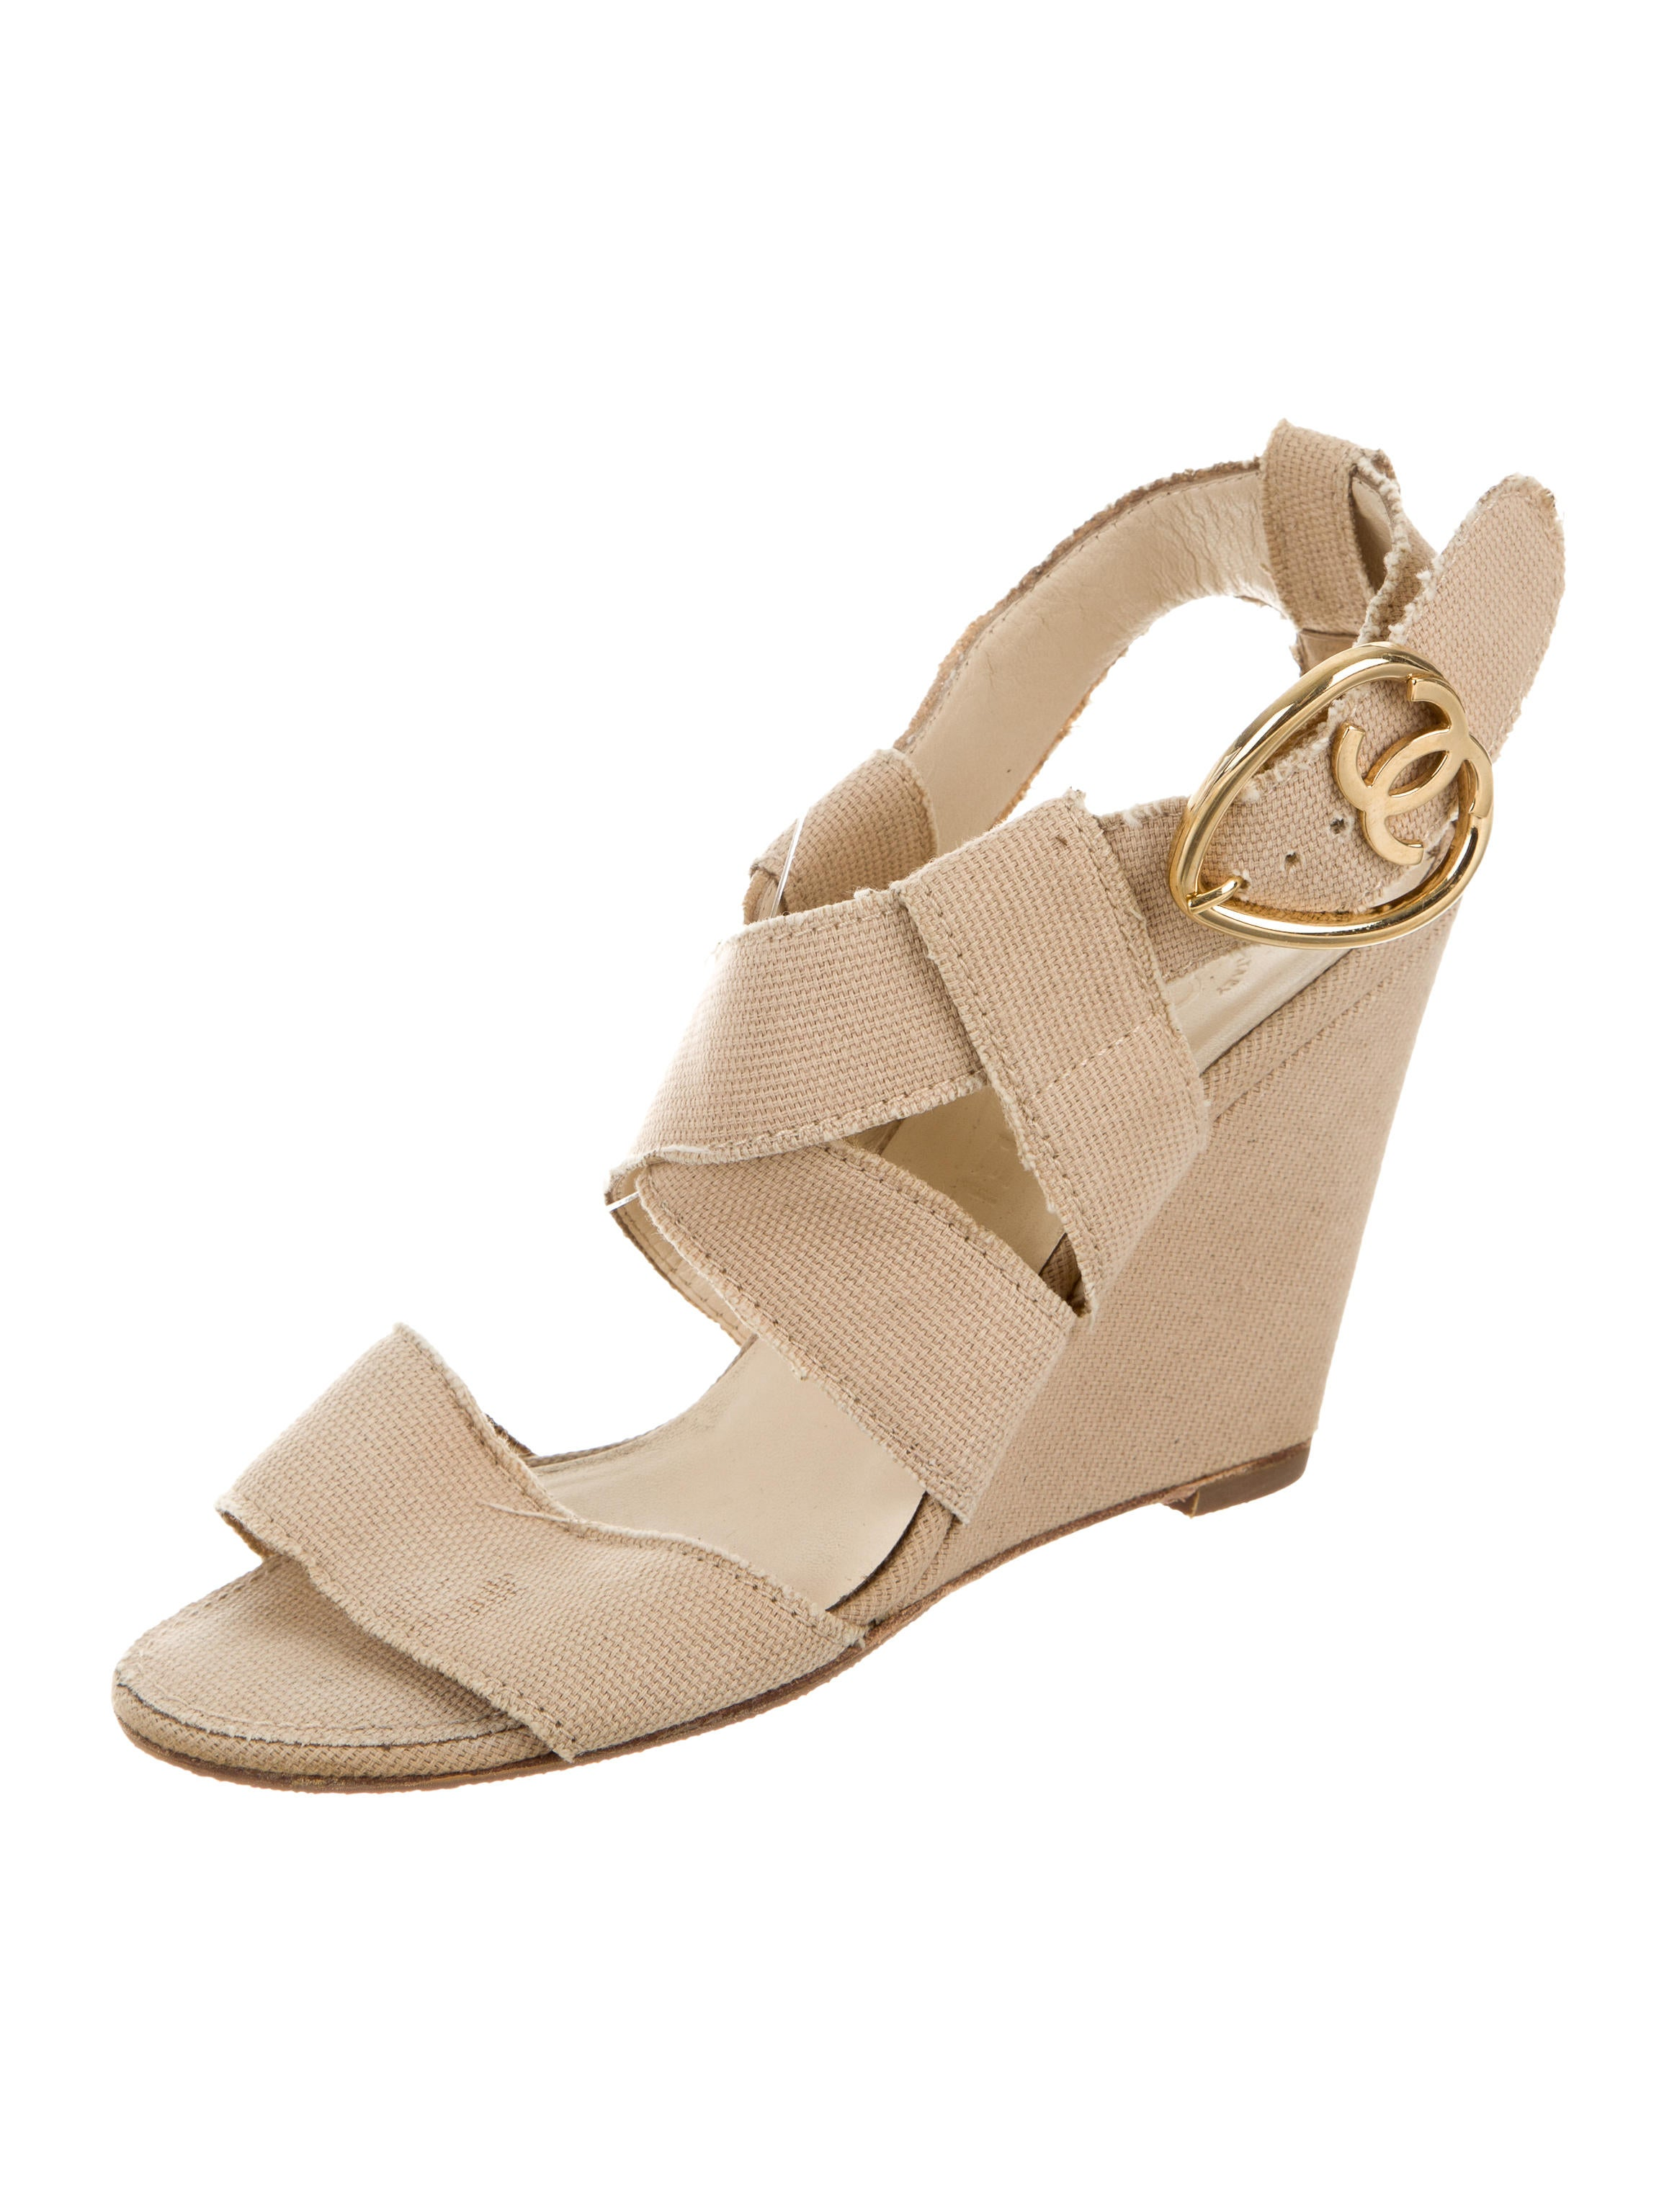 chanel canvas wedge sandals shoes cha179437 the realreal